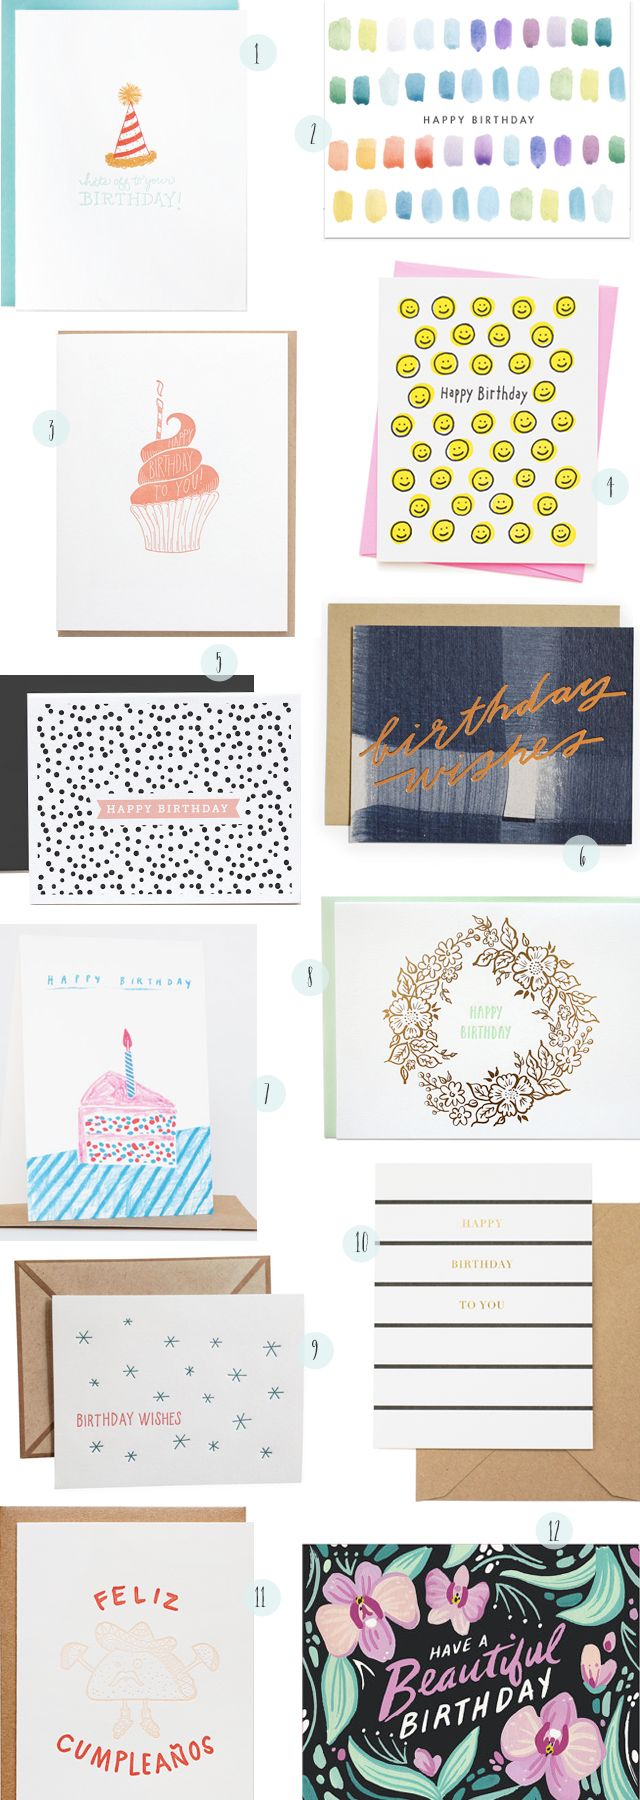 Stationery A–Z: Birthday Cards! // 1. Paper Lovely 2. Dear Hancock 3. Dahlia Press 4. Ashkahn 5. The Paper Cub 6. Moglea 7. Yellow Owl Workshop 8. Parrott Design Studio 9. Ink Meets Paper 10. Sugar Paper 11. Iron Curtain Press 12. Idlewild Co. // Links on OSBP!